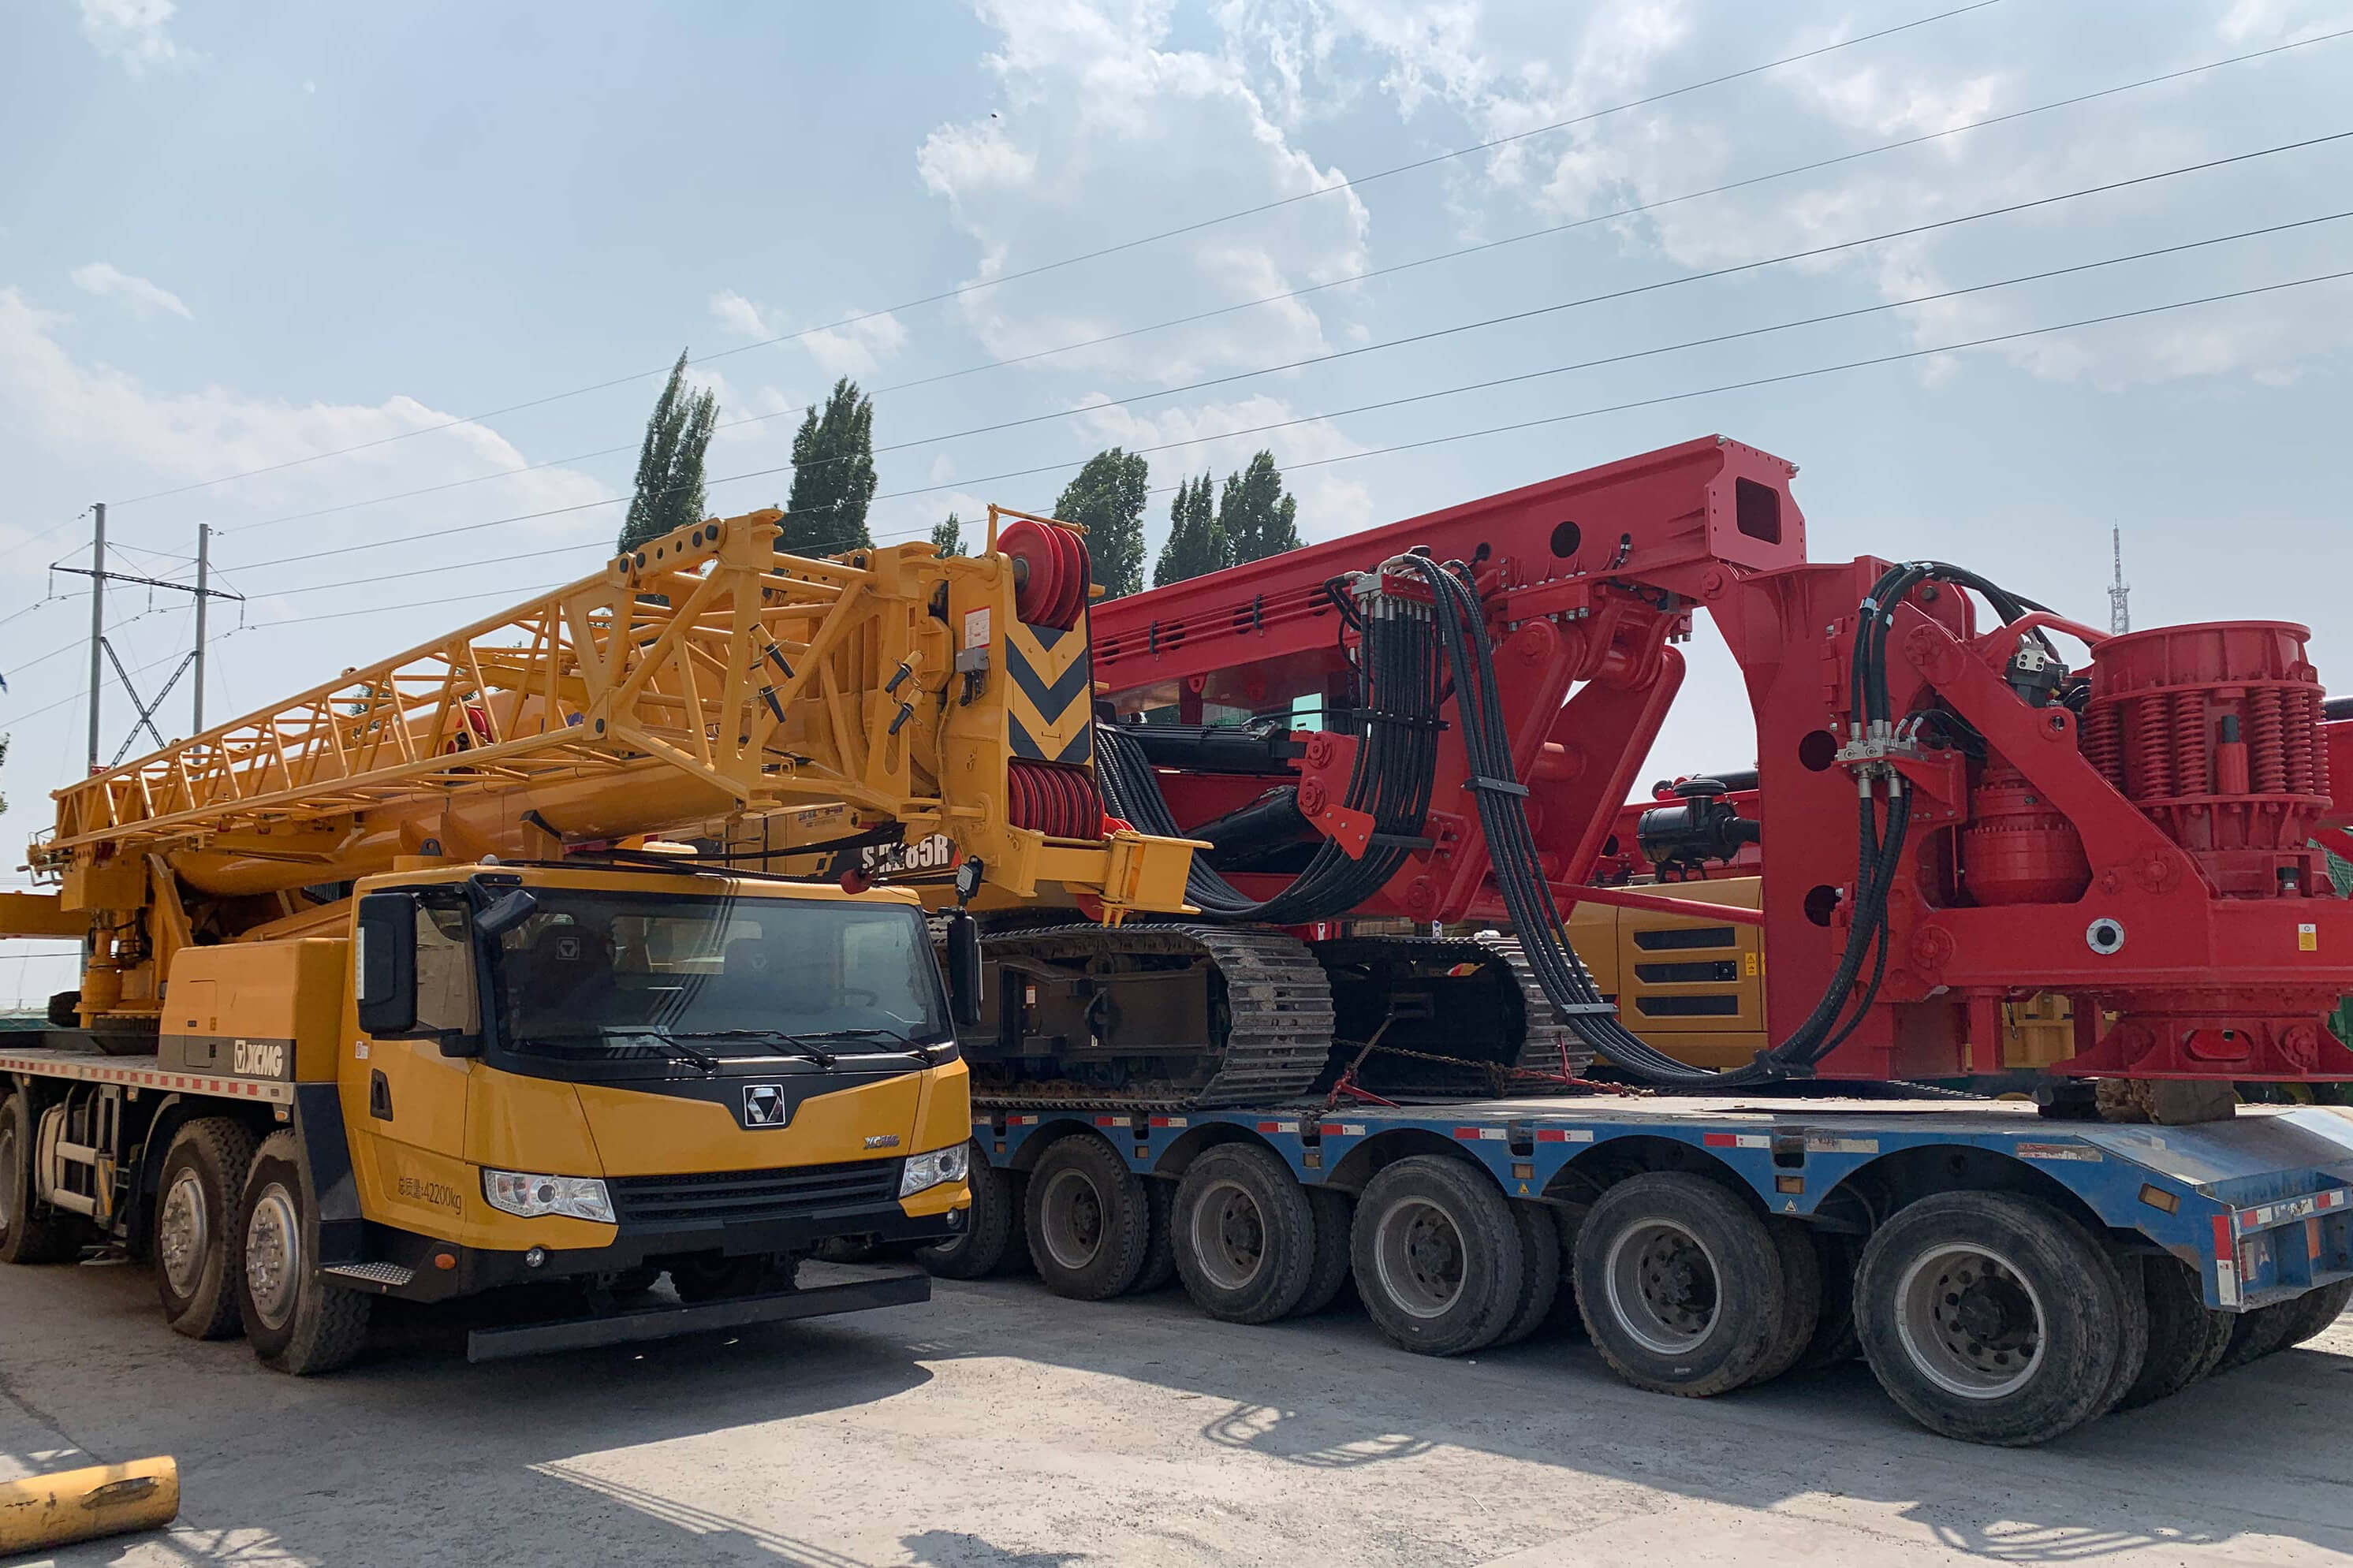 The equipment arrived in Khorgos Port